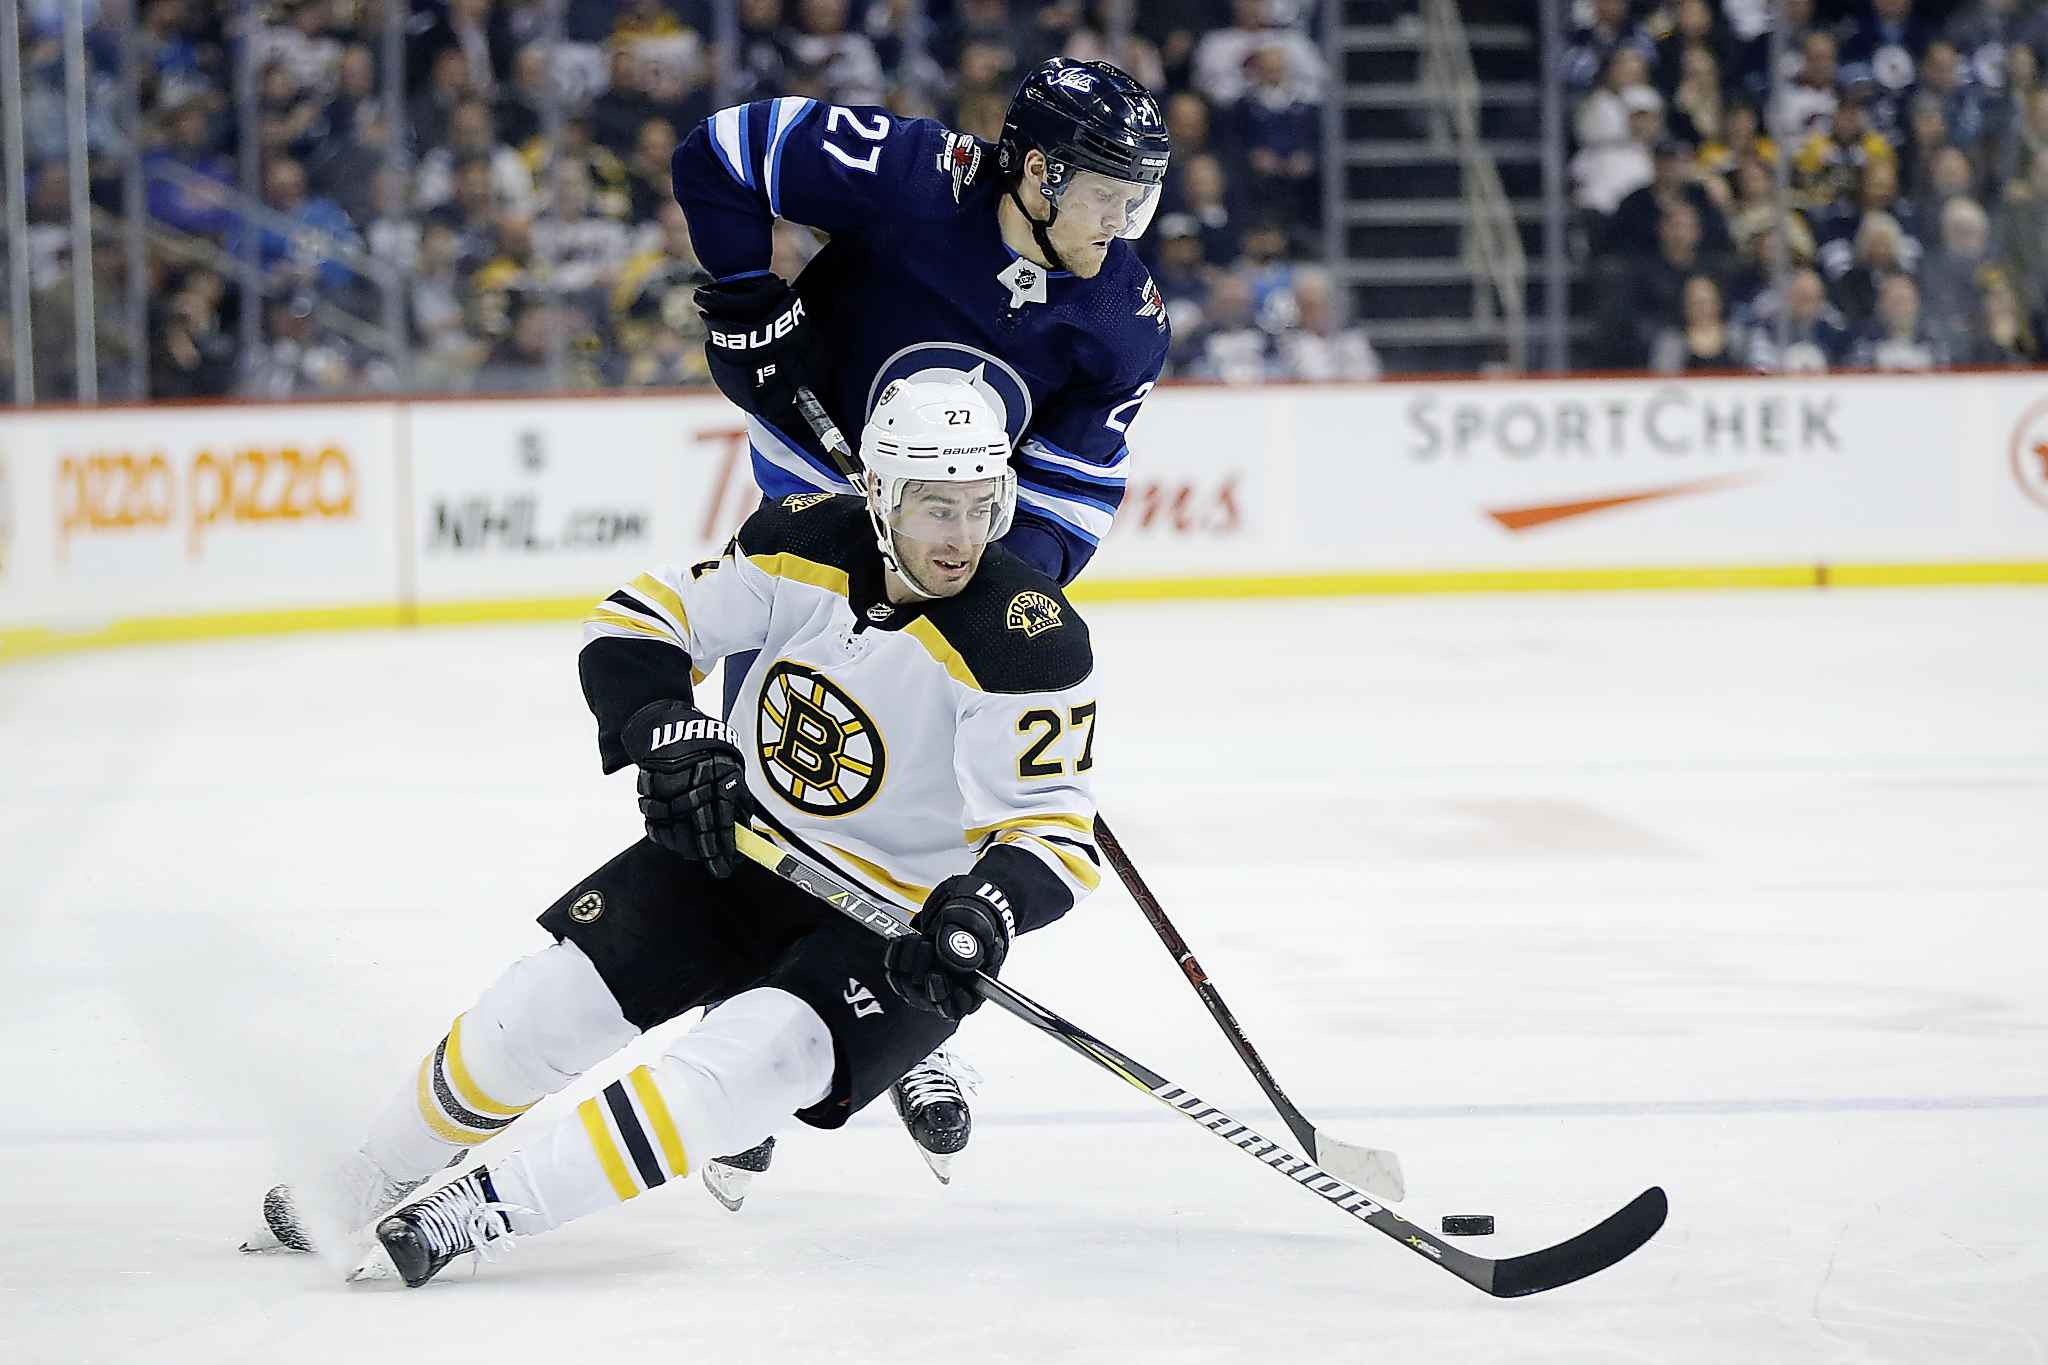 Winnipeg Jets' Nikolaj Ehlers changes direction on Boston Bruins' John Moore as he breaks for the net during the second period.